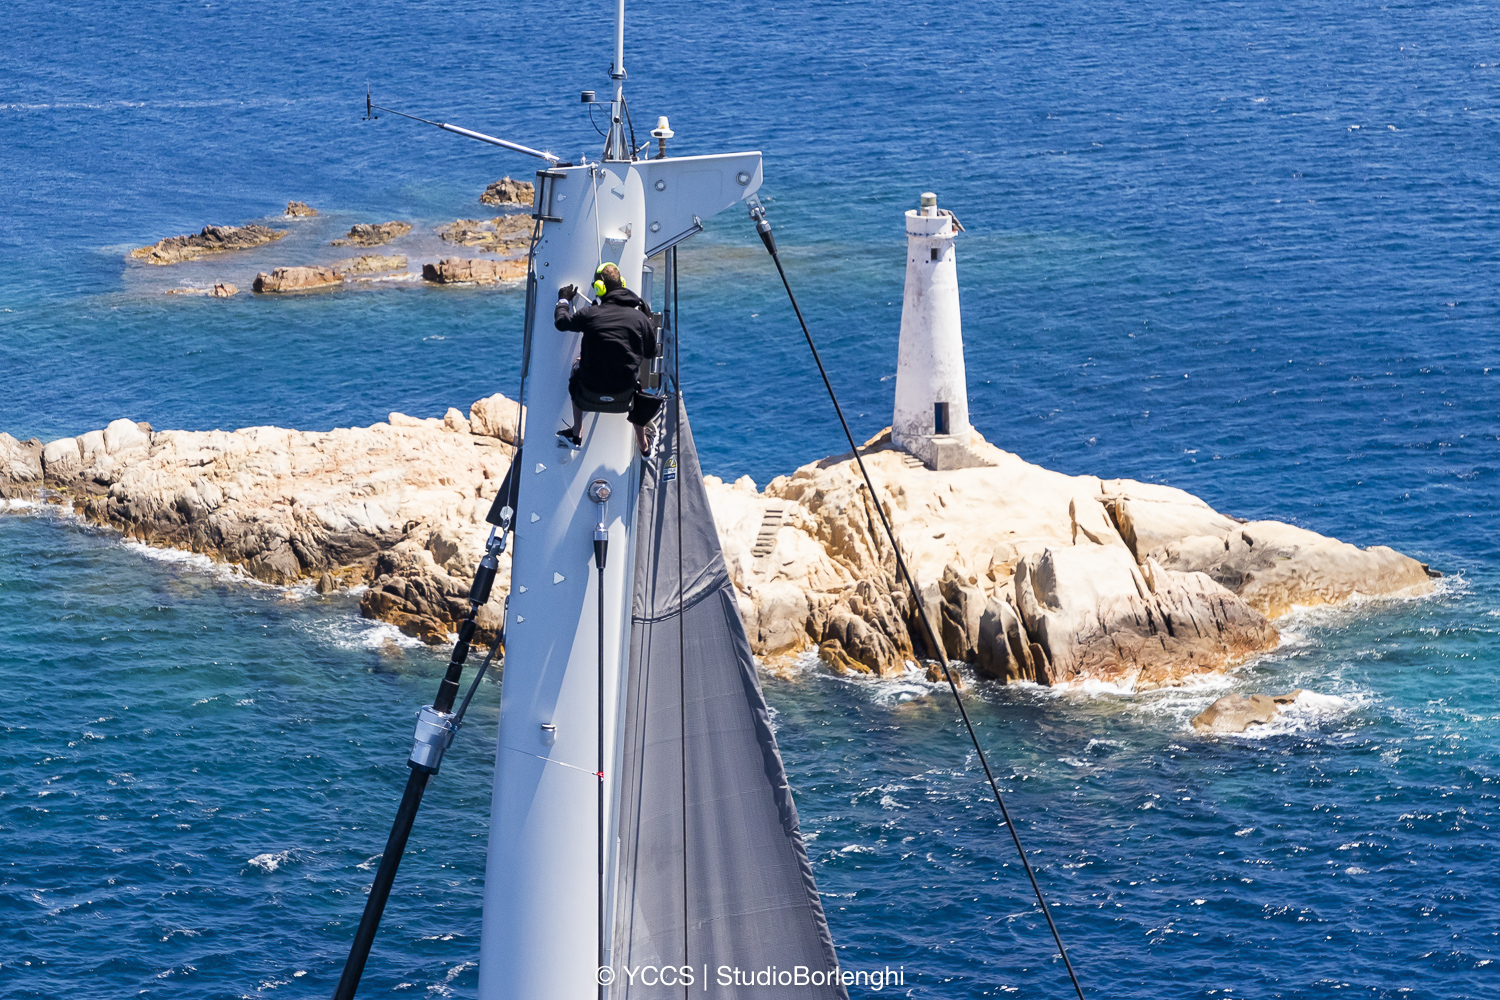 Highlights video of the Loro Piana Superyacht Regatta 2018 now online - NEWS - Yacht Club Costa Smeralda